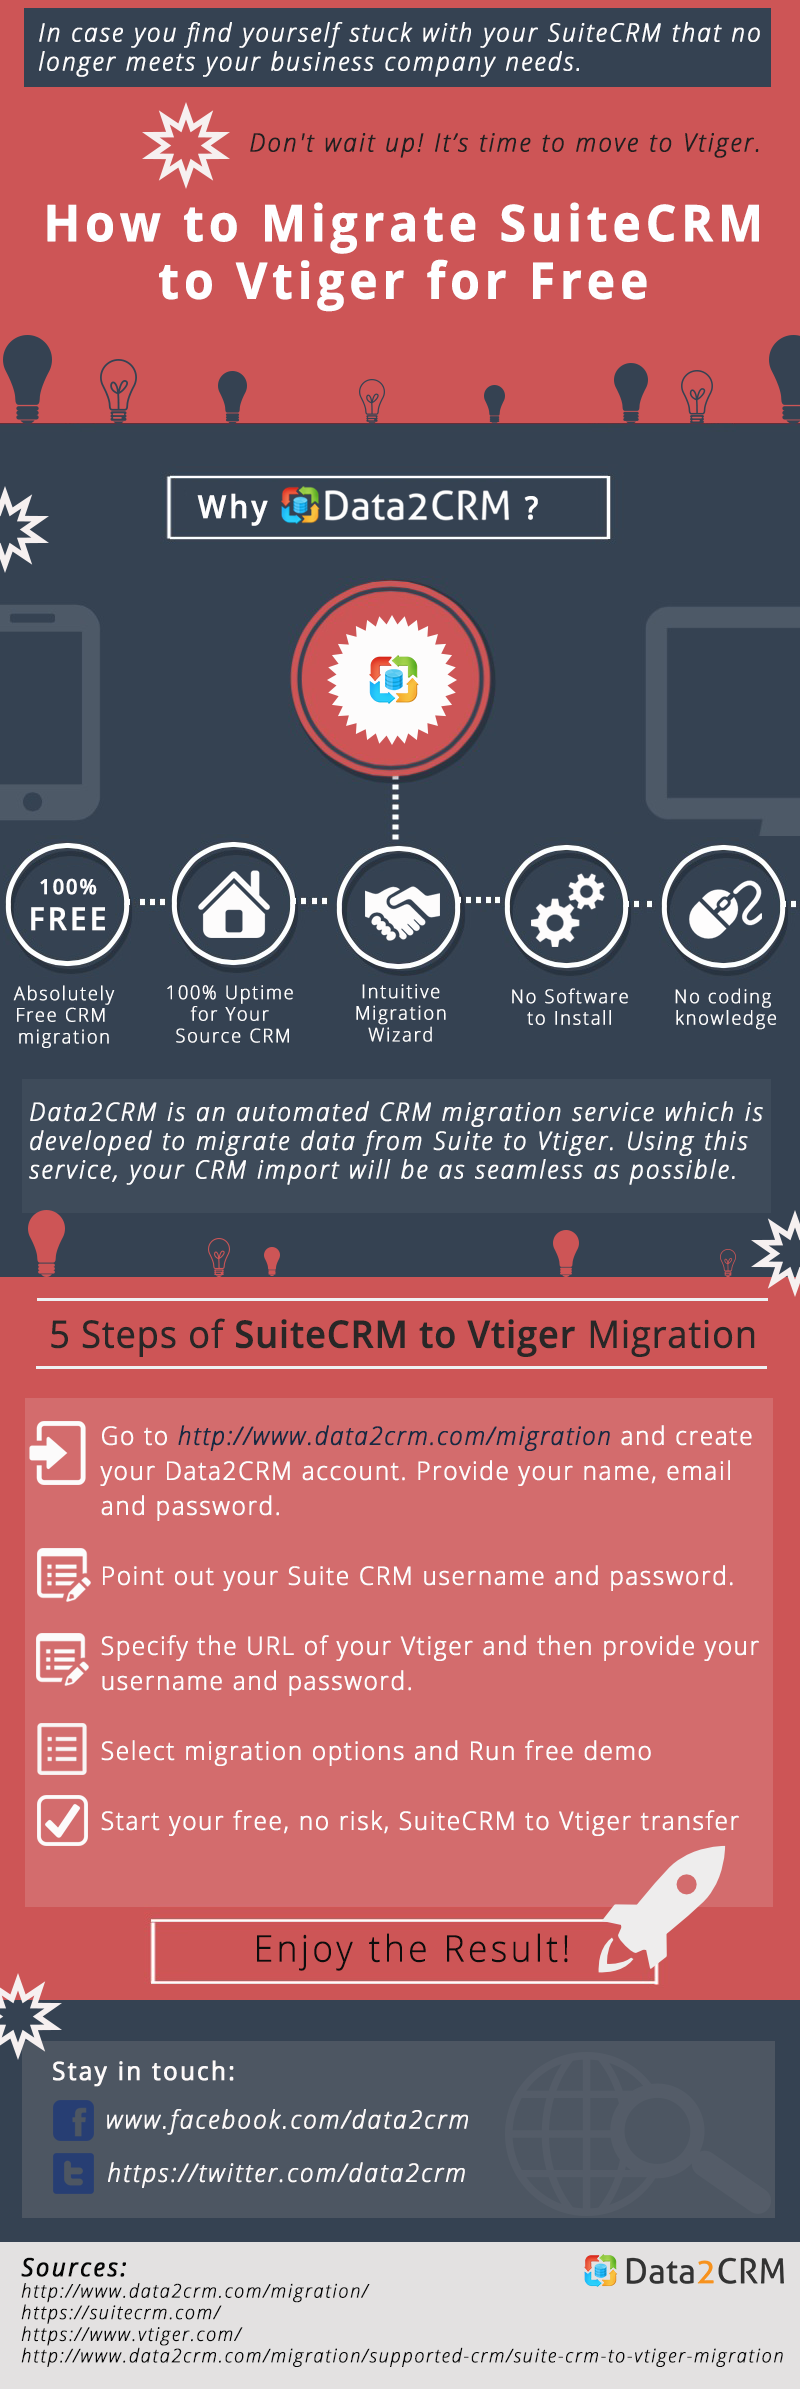 [data2crm]move-suitecrm-to-vtiger-automatedly-infographic